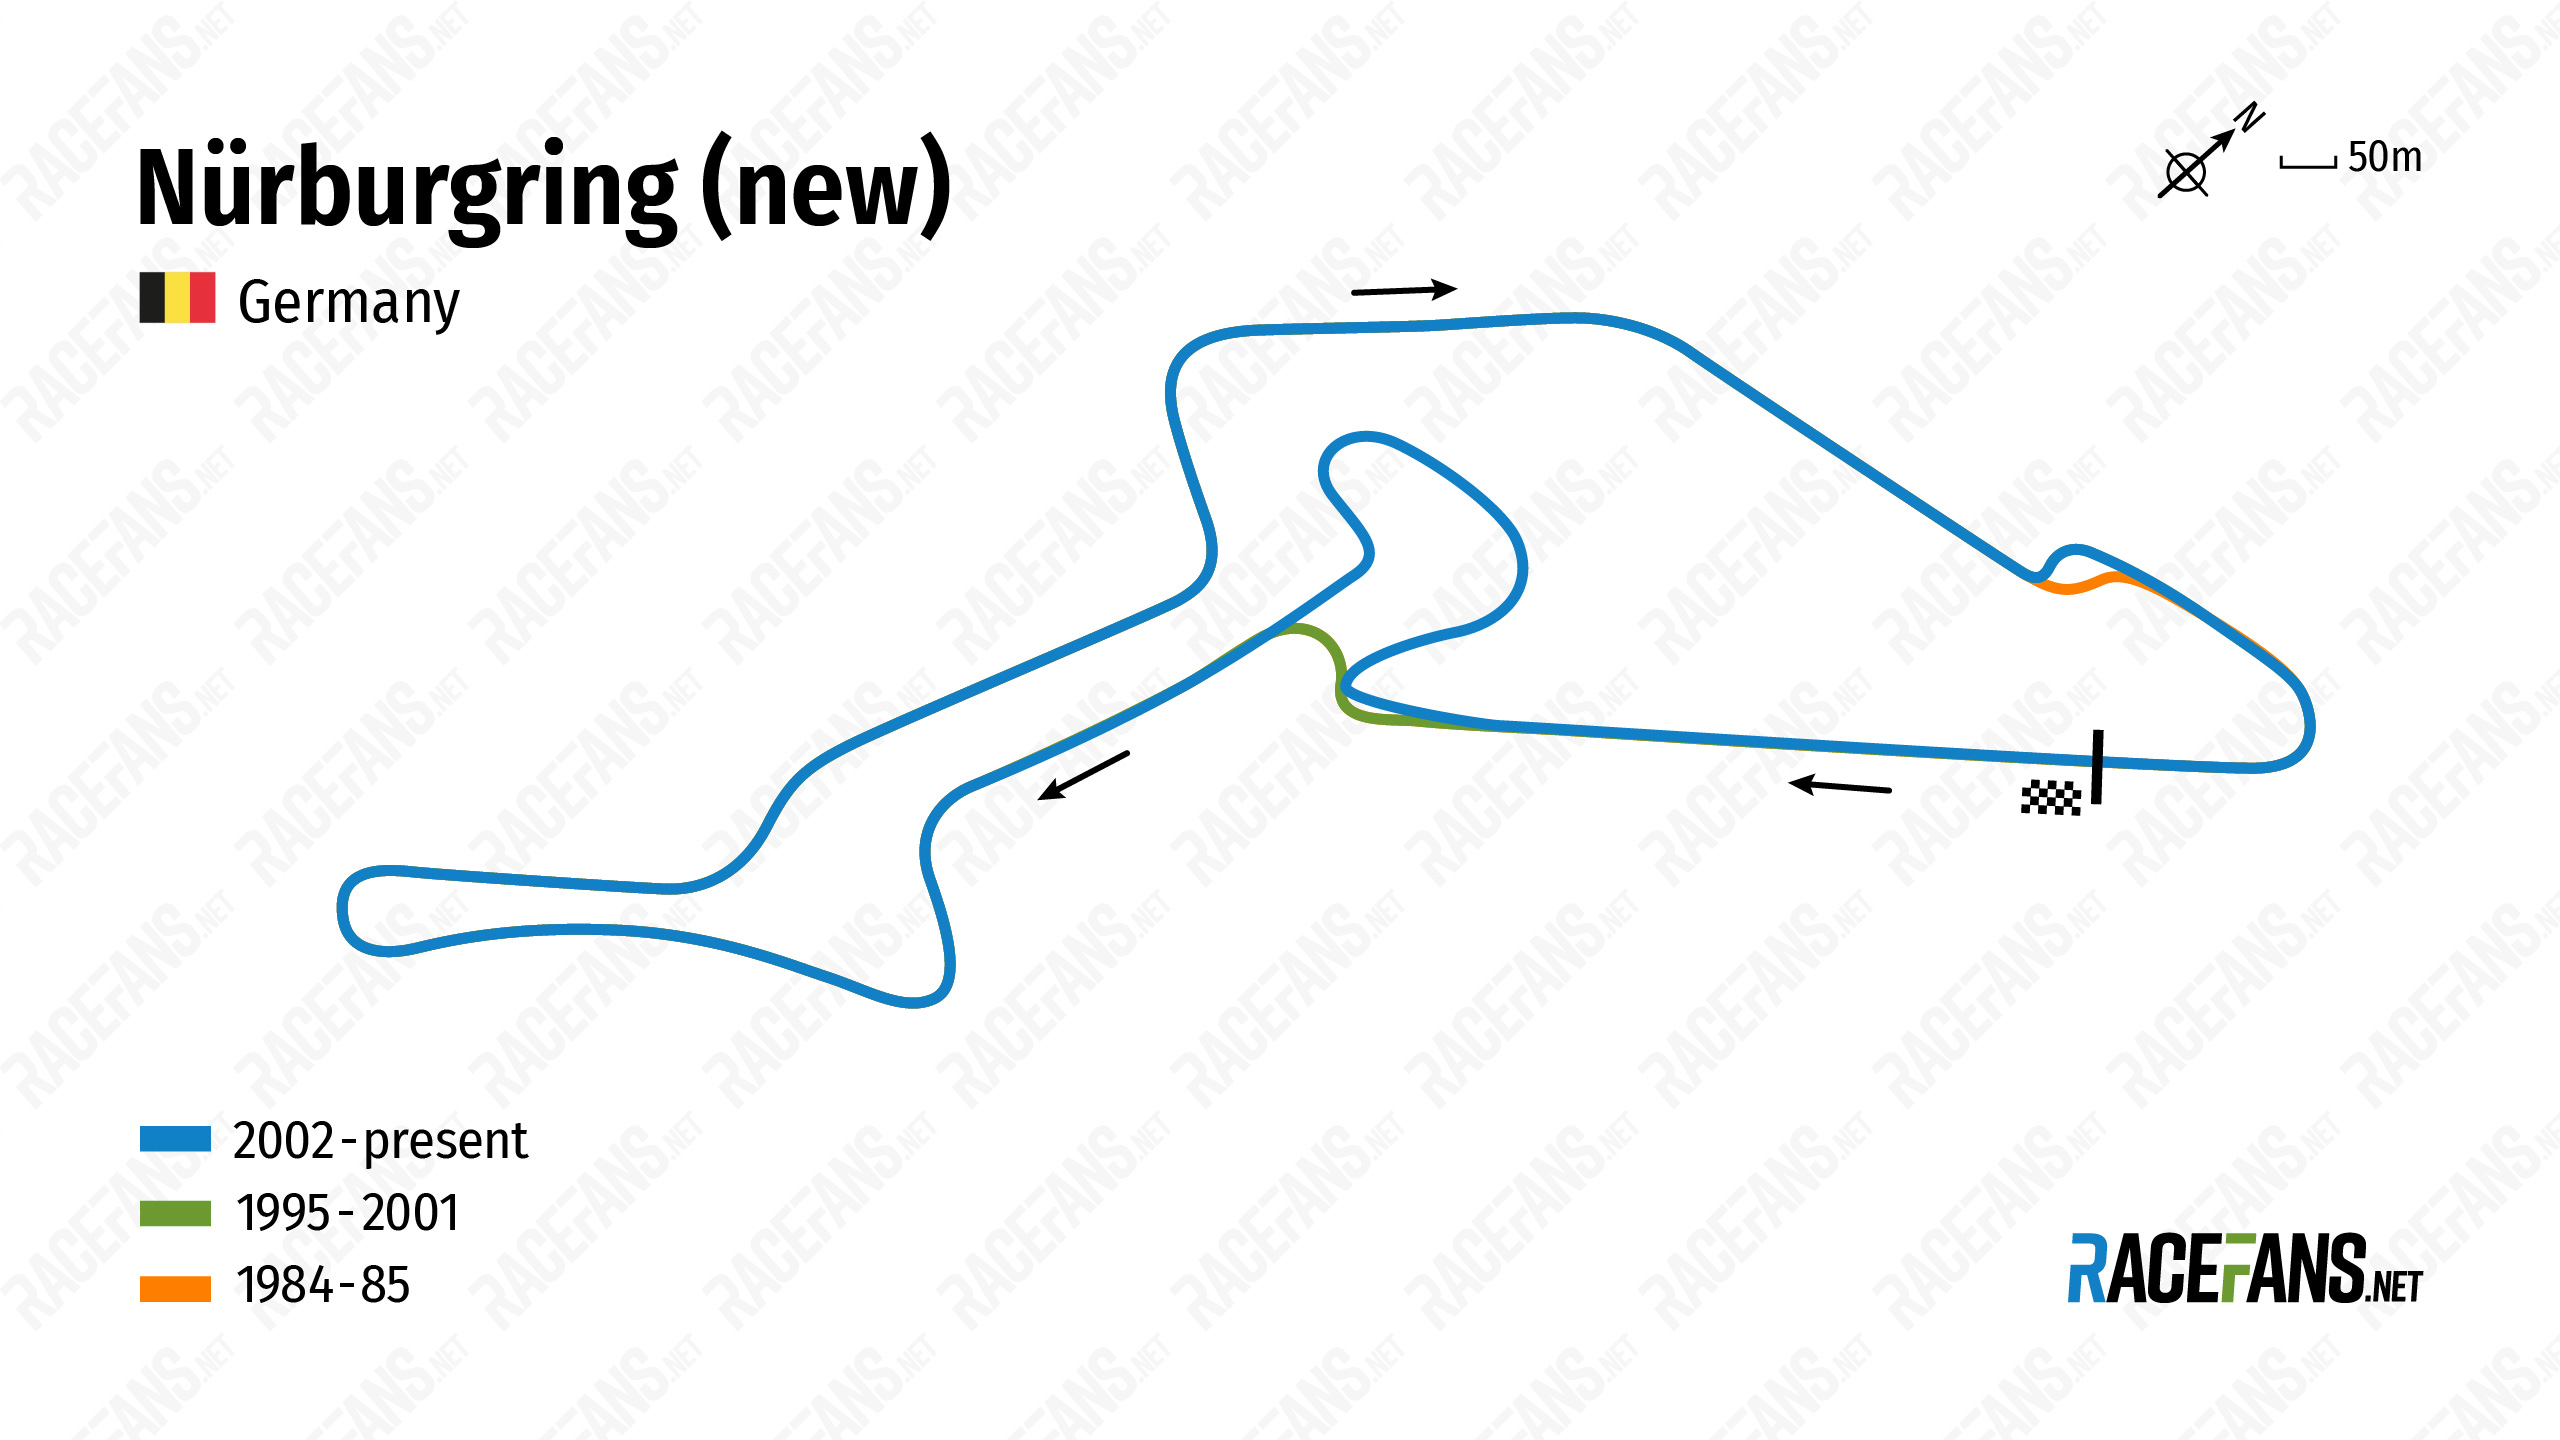 Nurburgring new track iterations map: 1984-